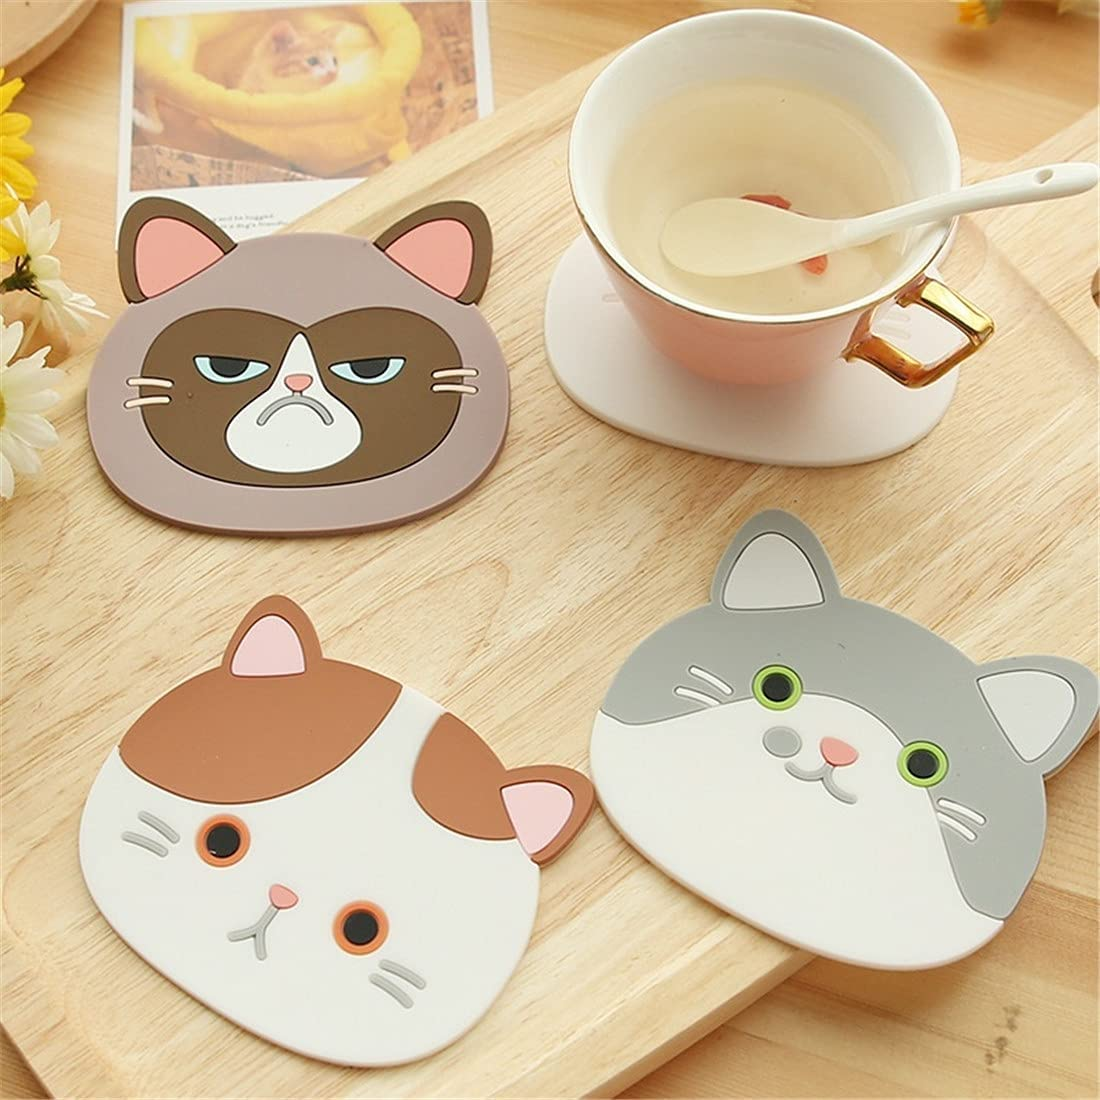 Cup Pad Financial sales sale Cute 100% quality warranty Cartoon Cat Placemat Beverage Drink Pot Coffee